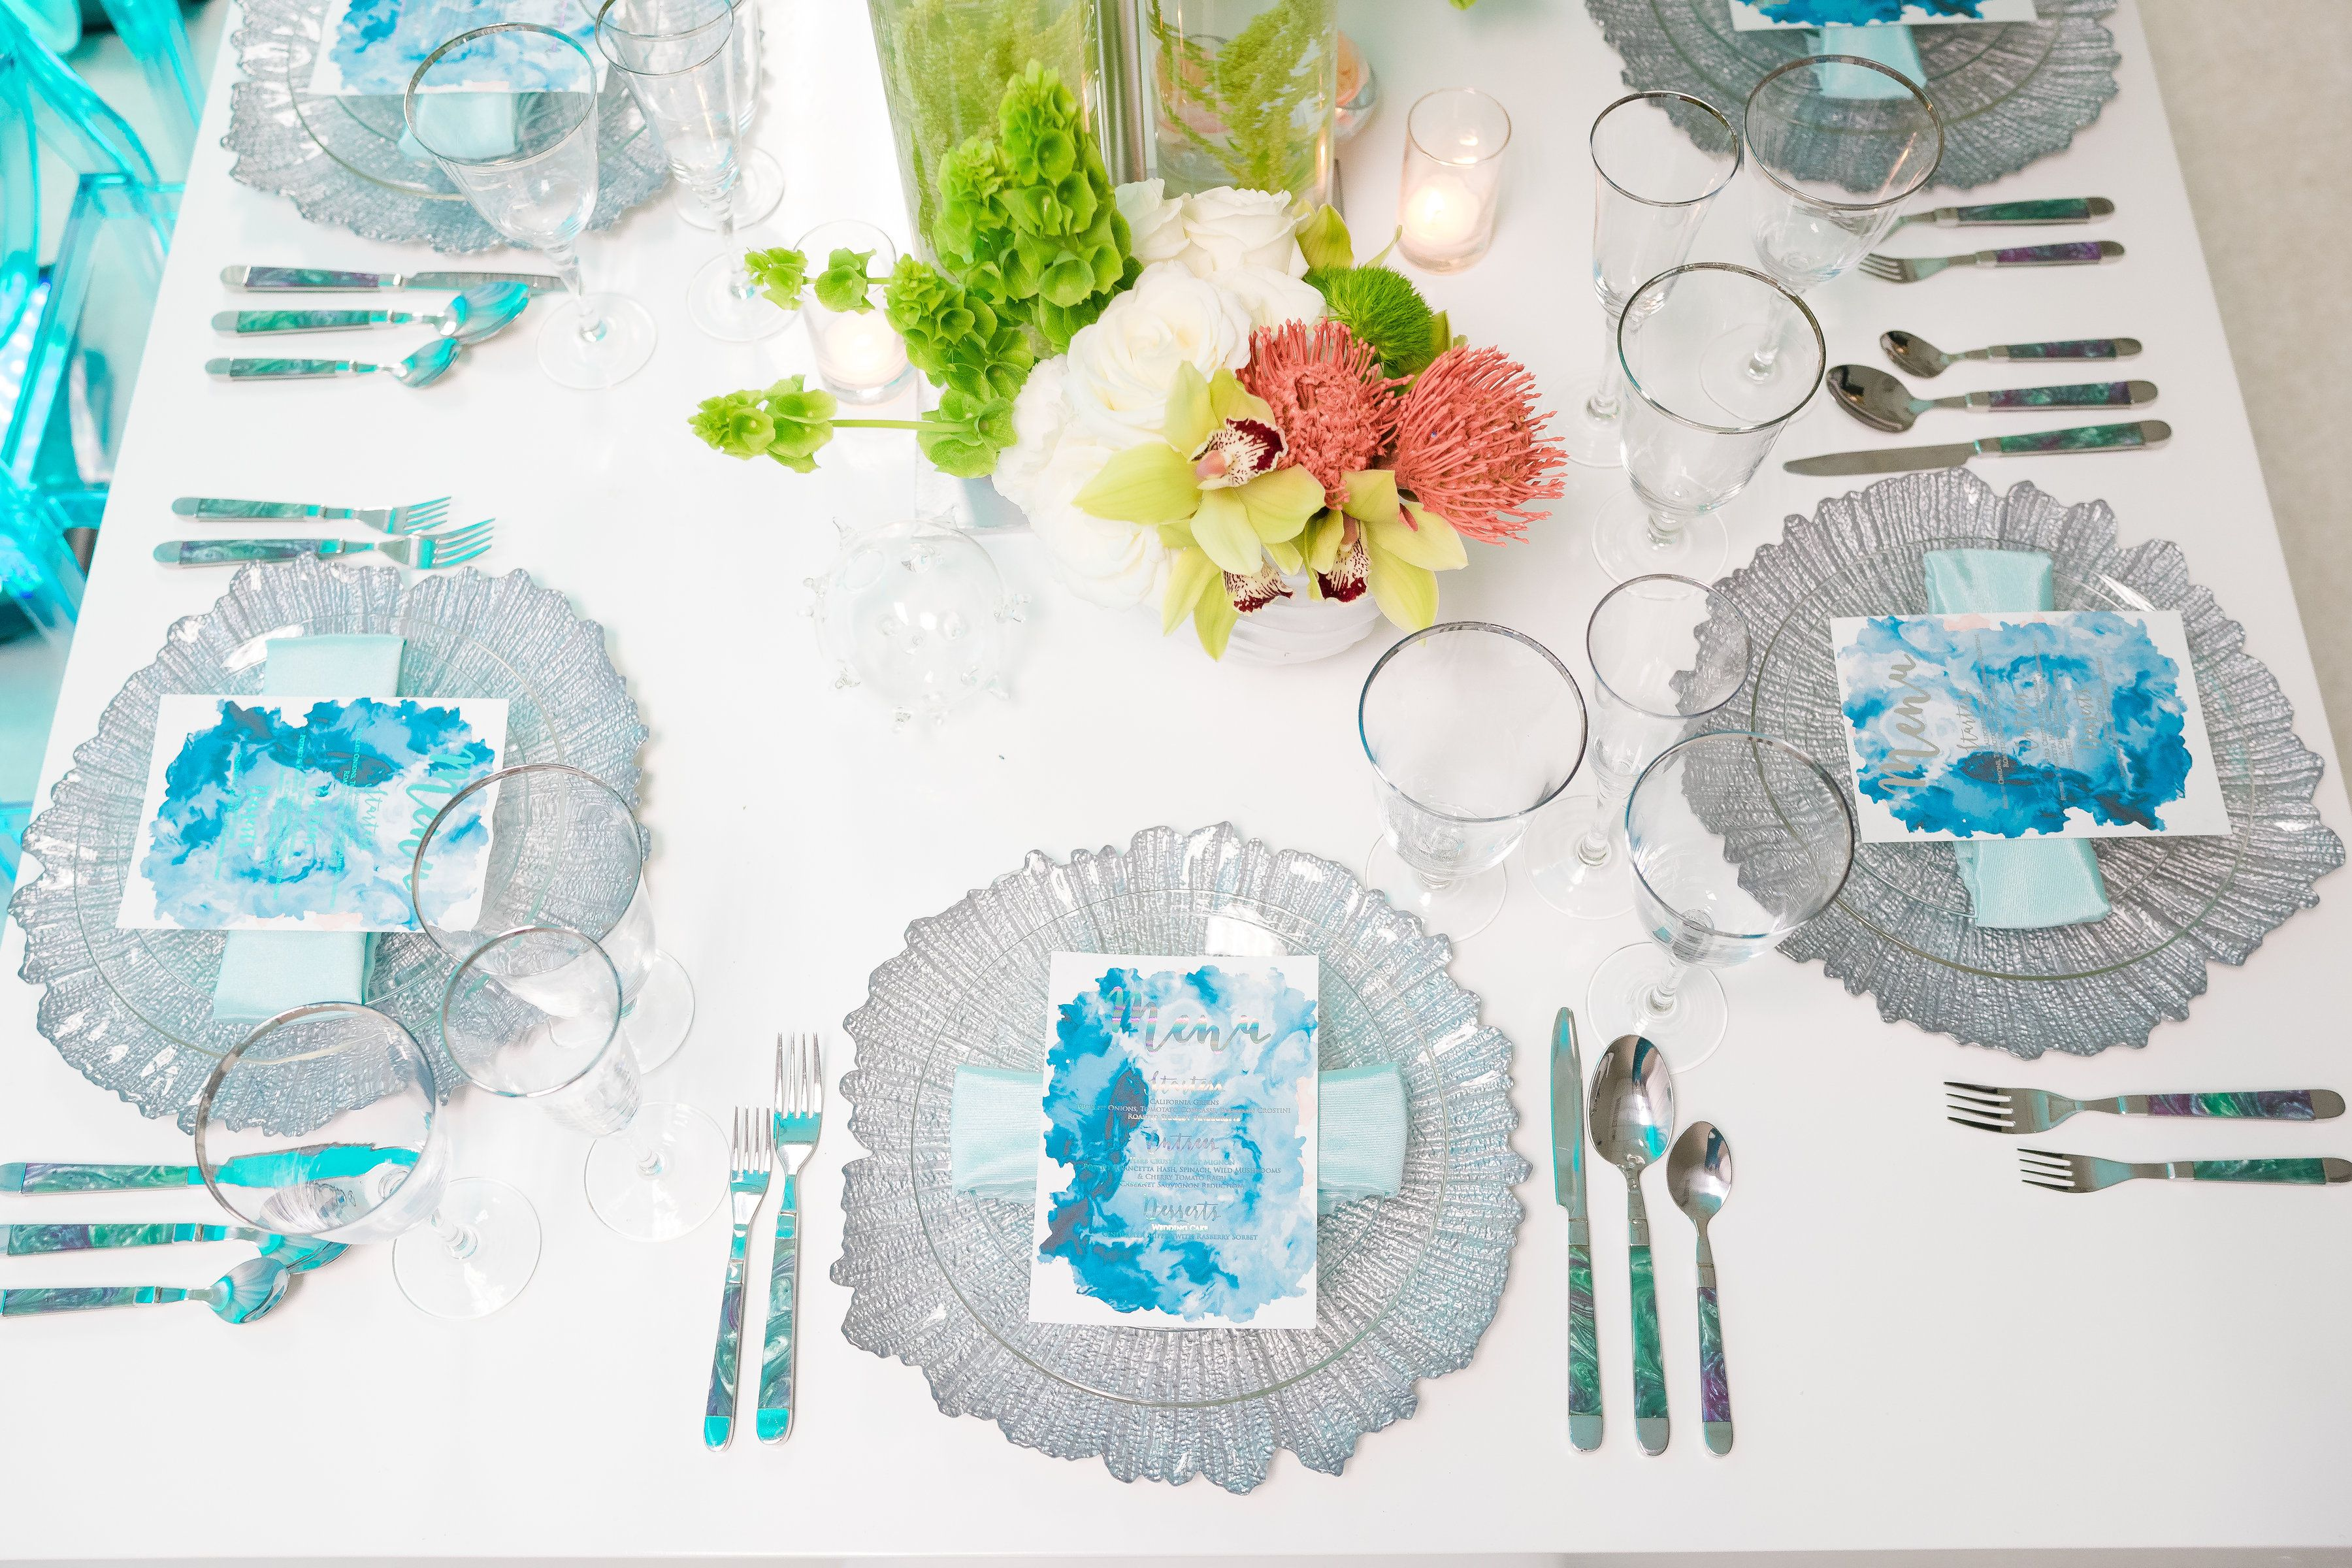 f8430ecb99b Blue watercolor menus for this table inspired by The Little Mermaid ...